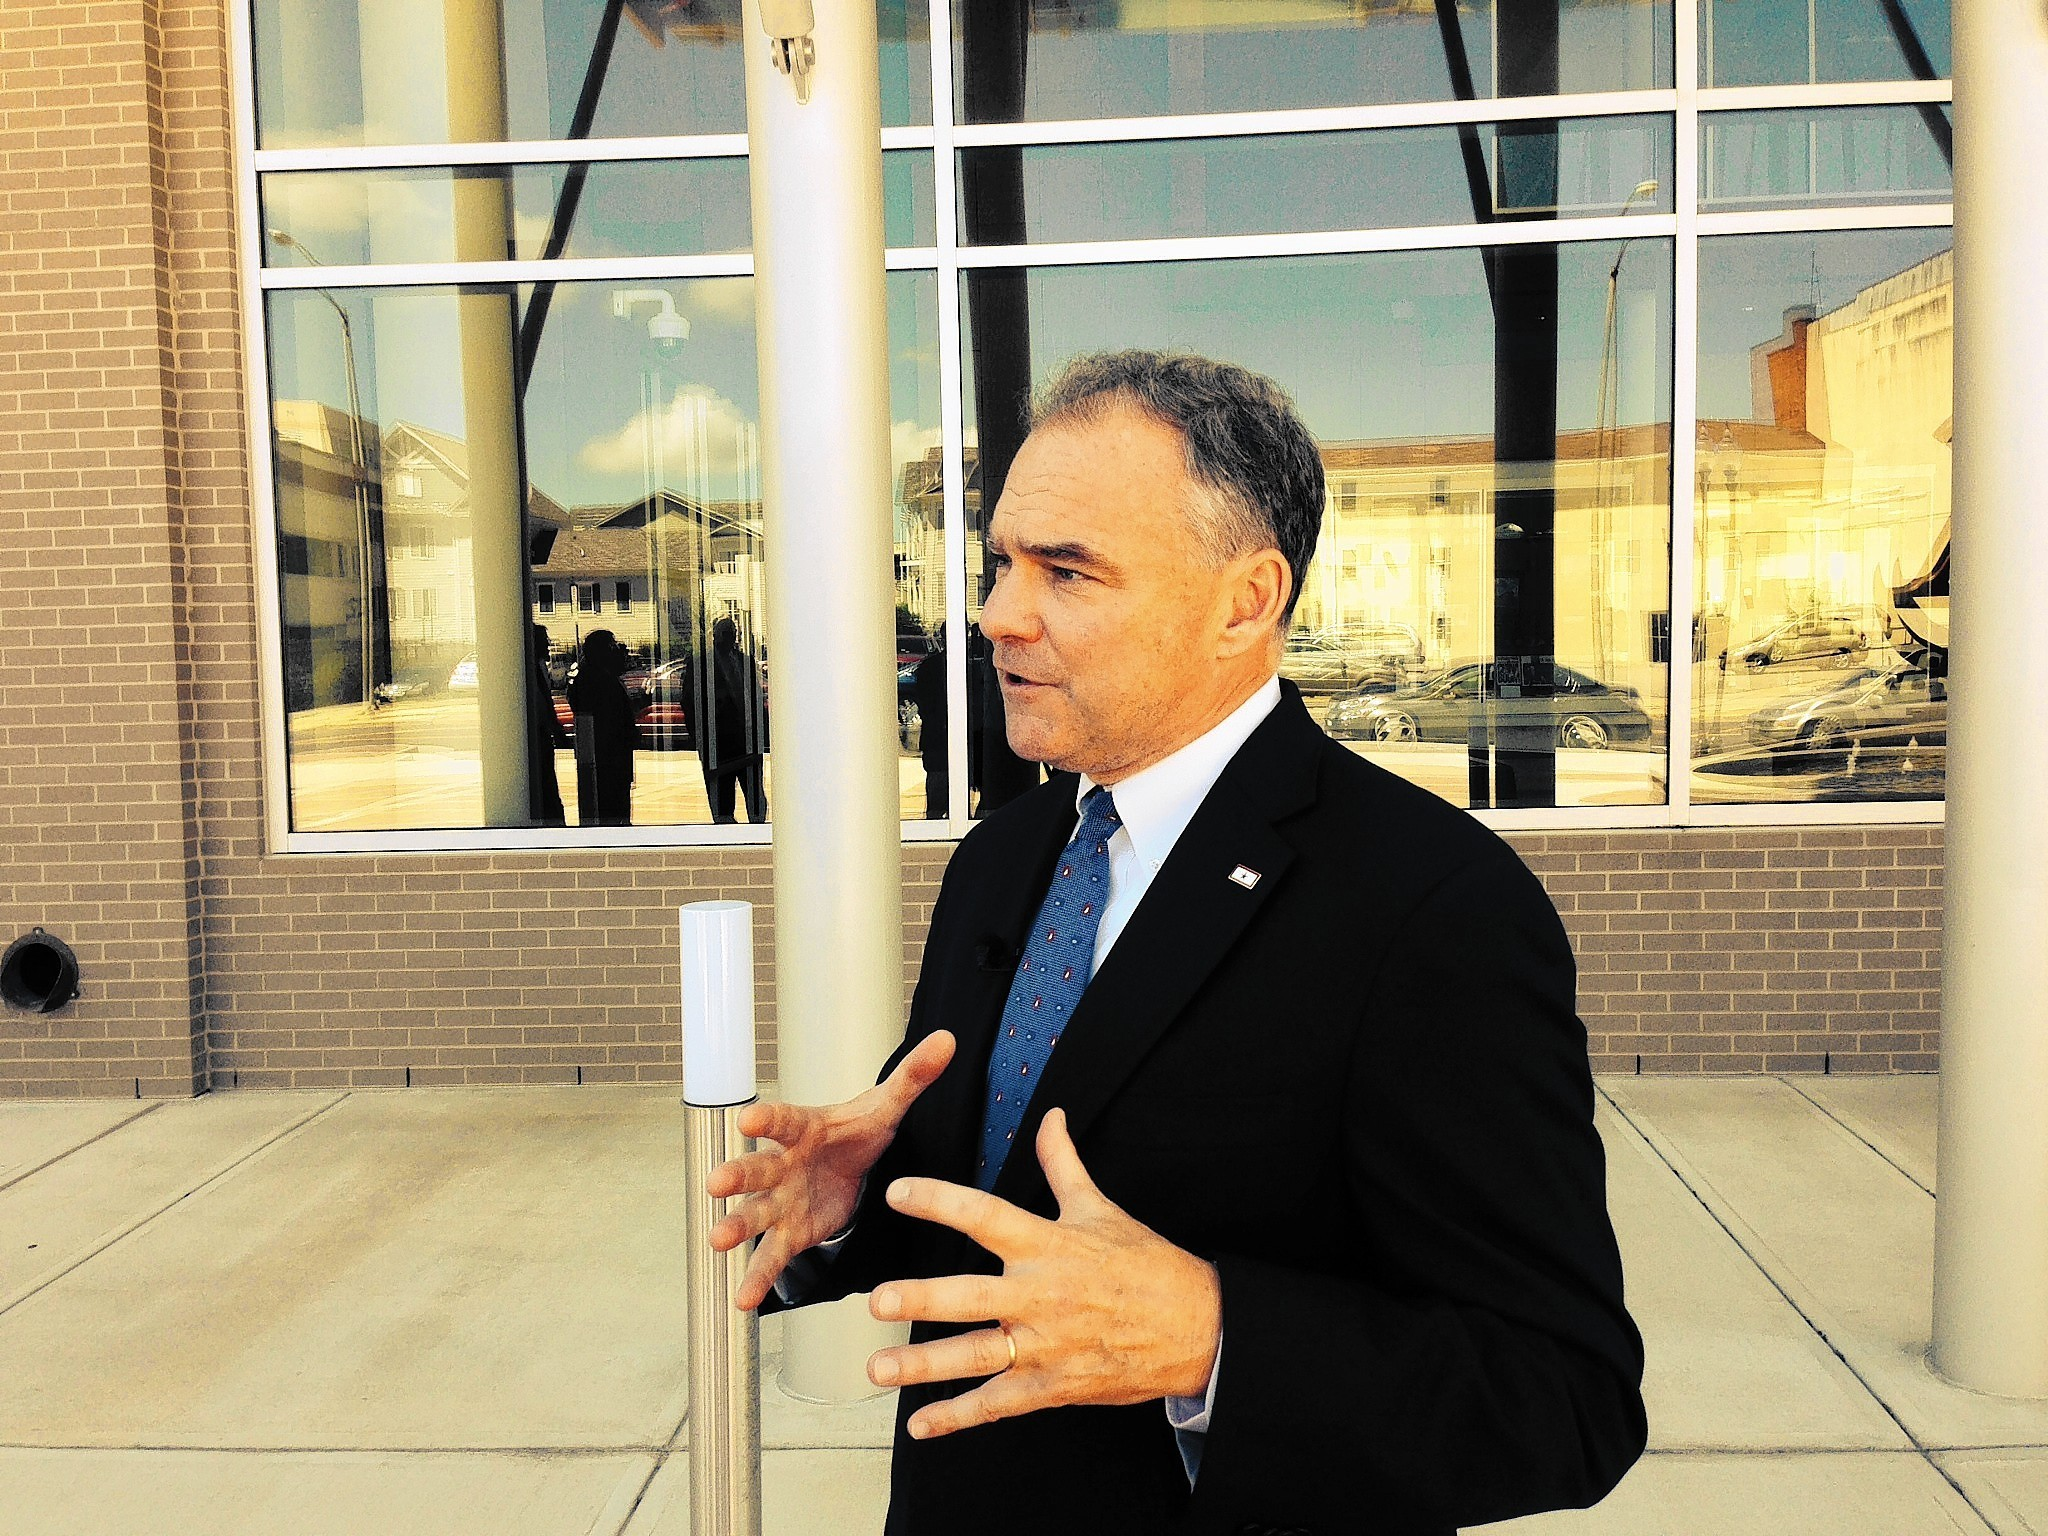 Sen. Tim Kaine, D-Va., talks with reporters outside The Apprentice School at Newport News Shipbuilding in August. Kaine toured the school and discussed how Congress could encourage more training and technical education.